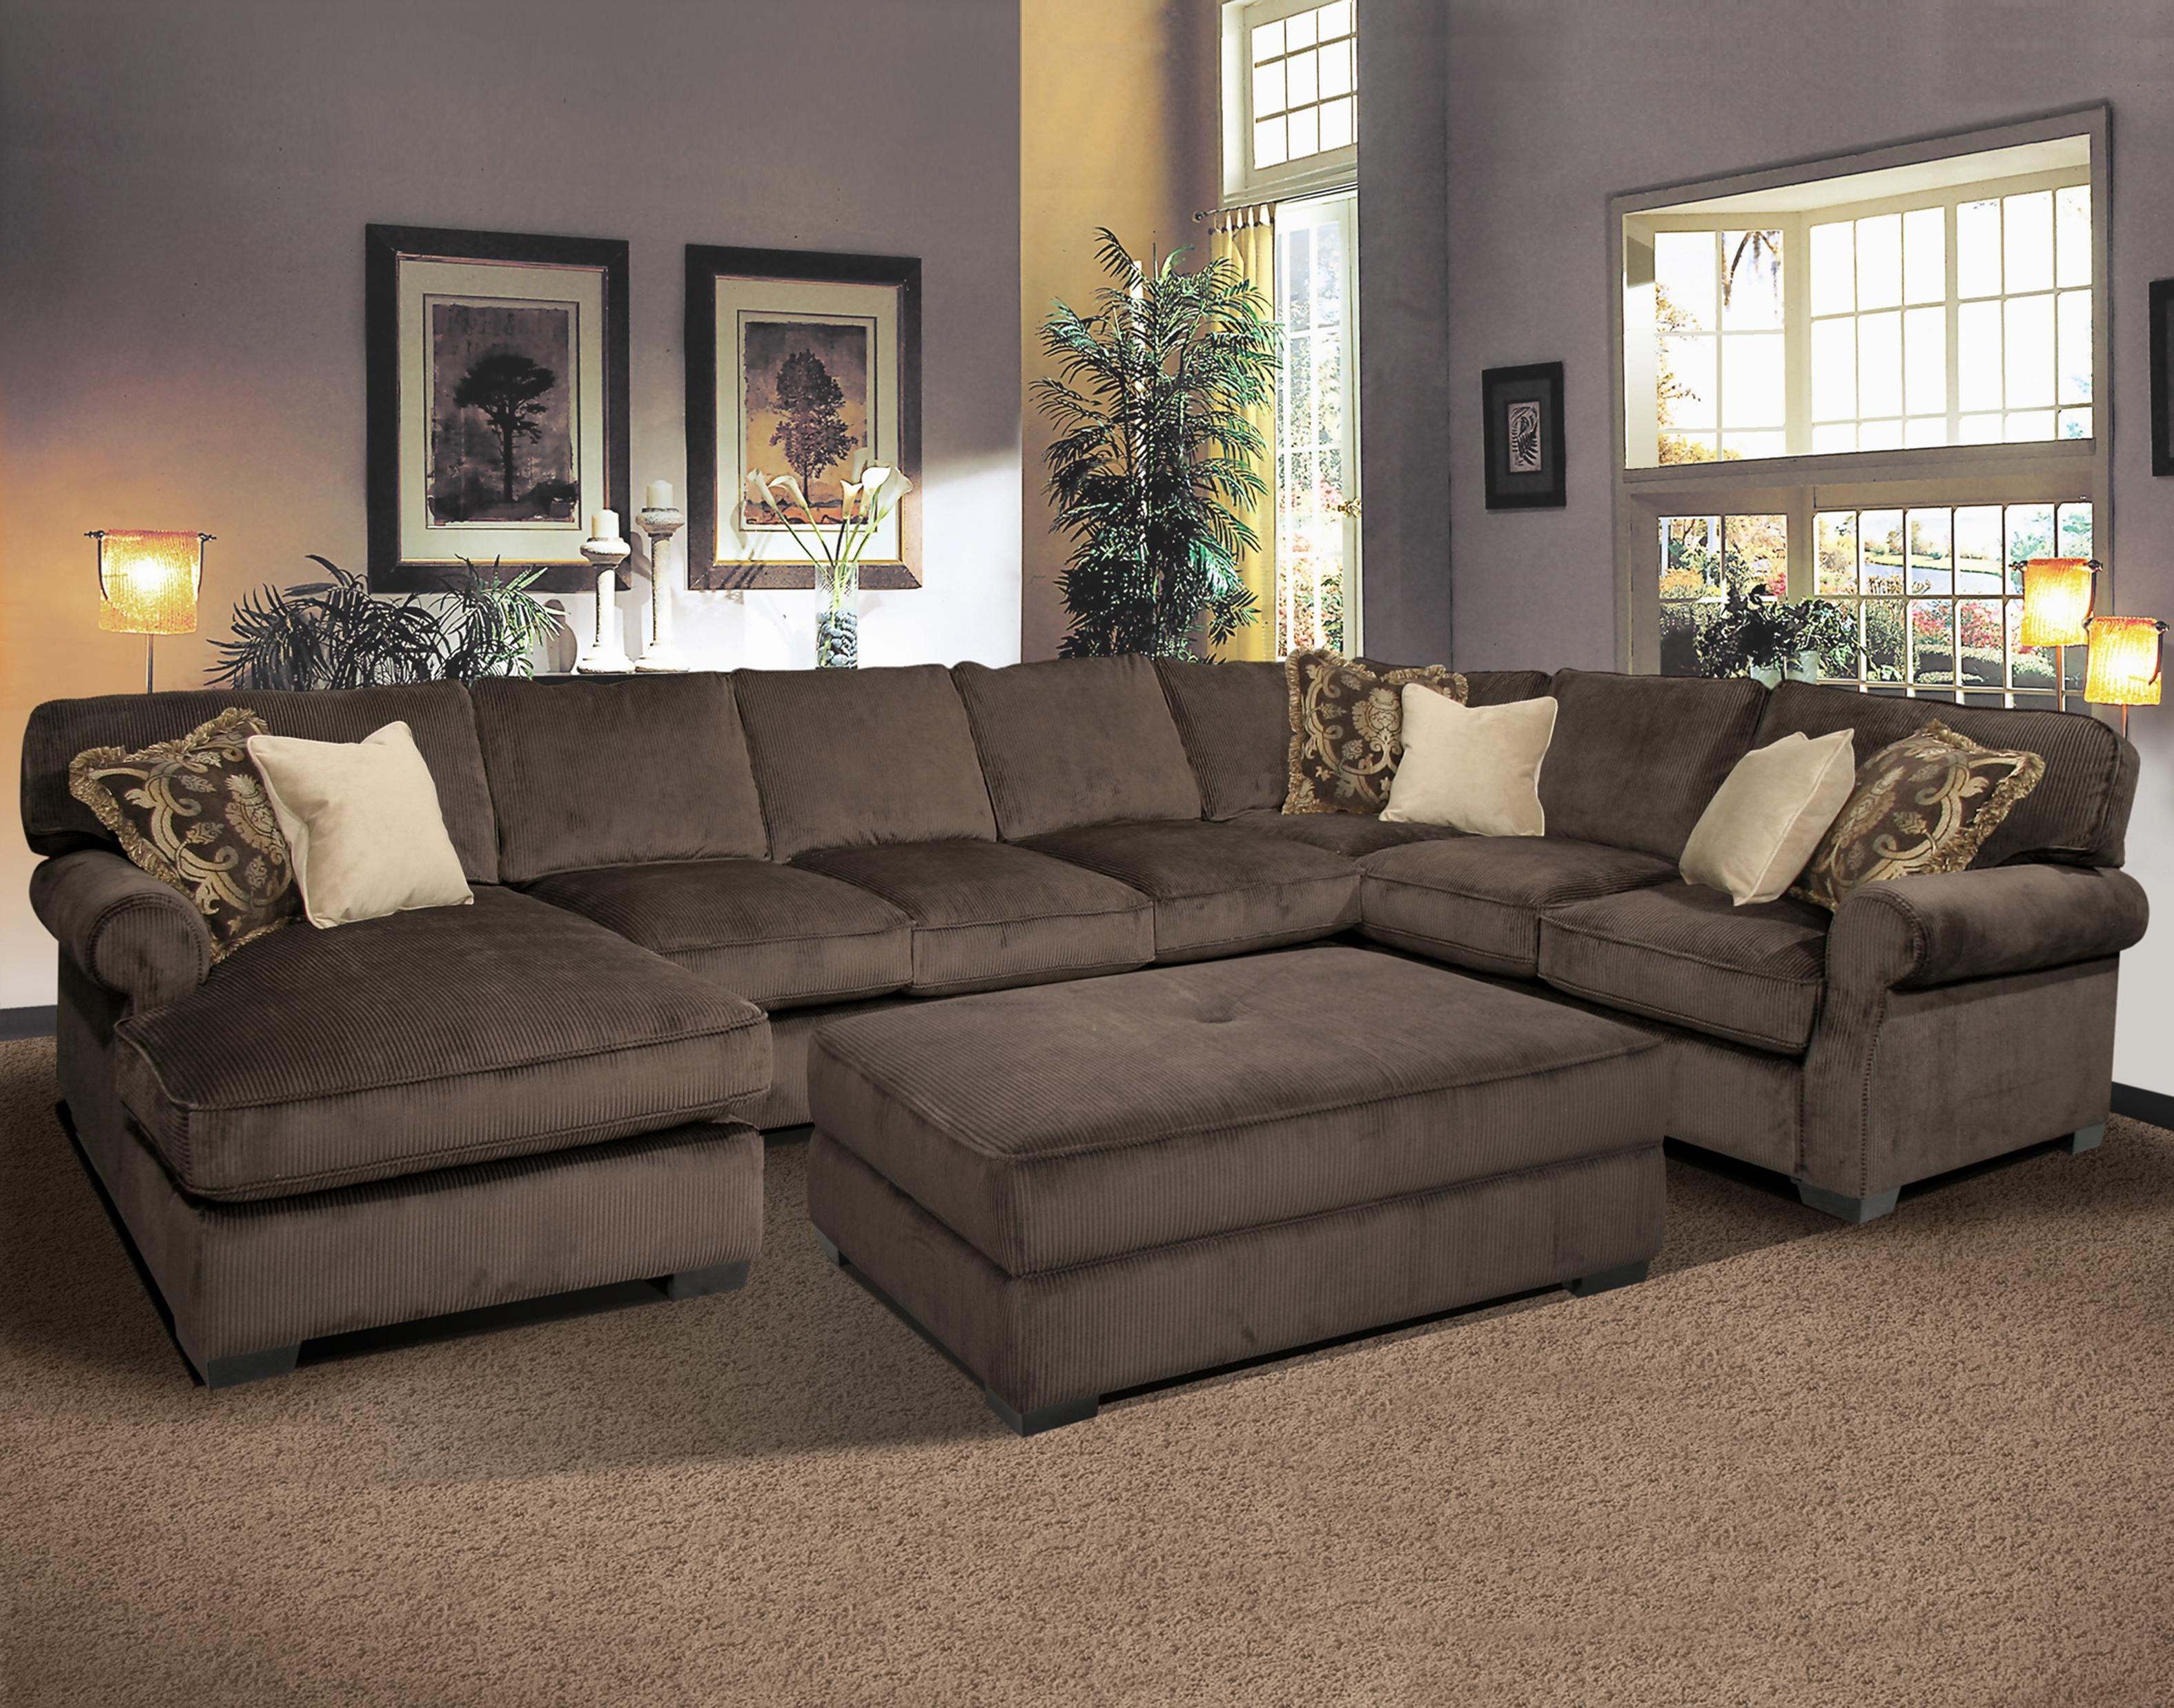 Widely Used Awesome Oversized Sectional Sofa On Grand Island Large 7 Seat Regarding Oversized Sectional Sofas With Chaise (View 15 of 15)